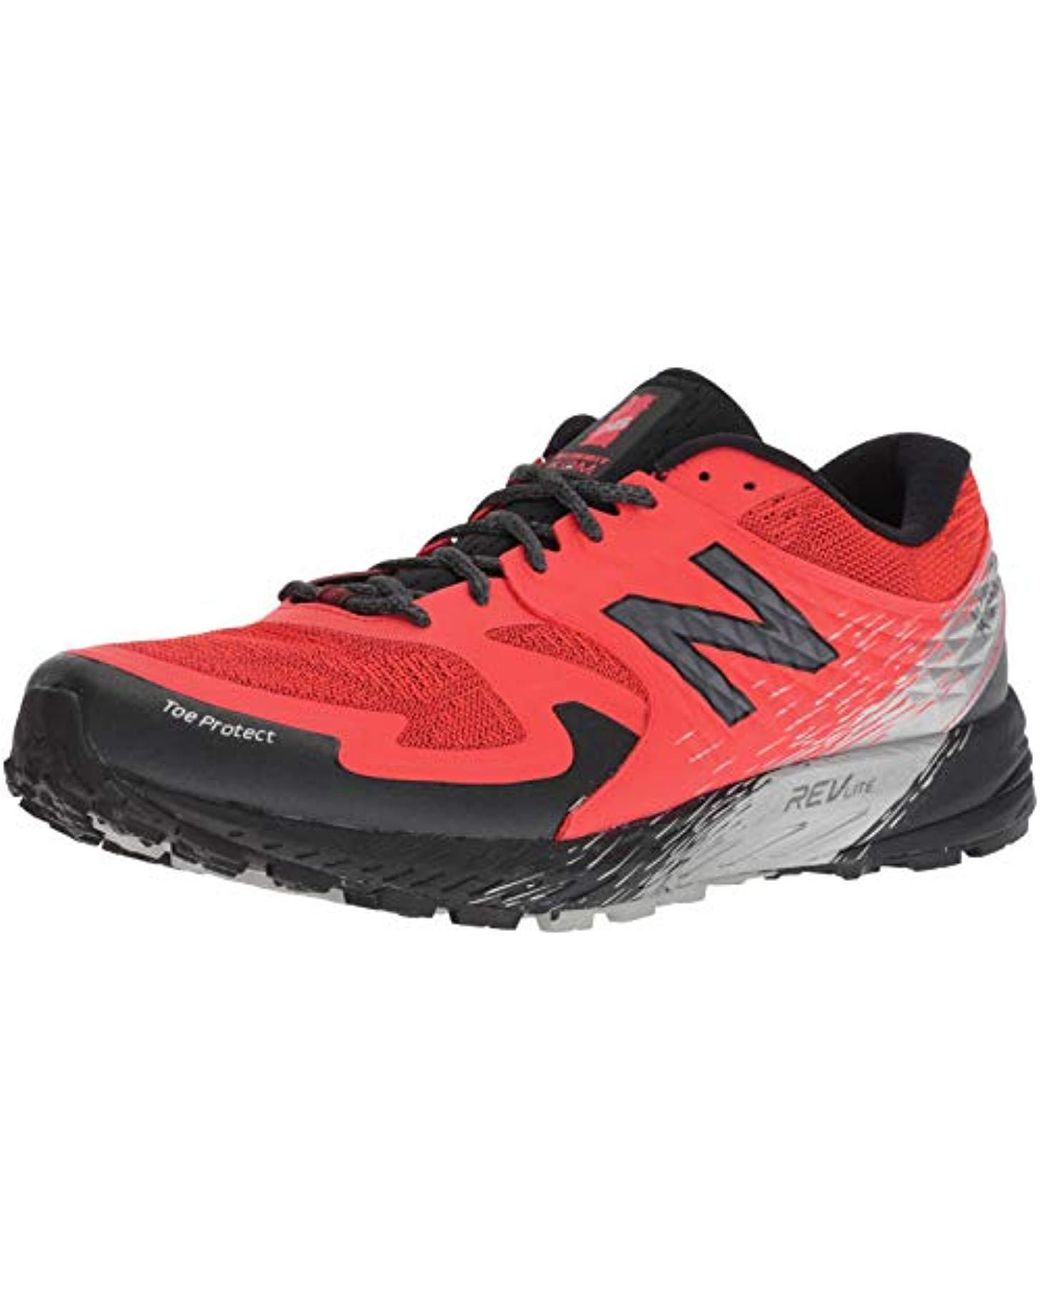 f7e5d0de07b New Balance Summit Kom Trail Running Shoes for Men - Save 4% - Lyst